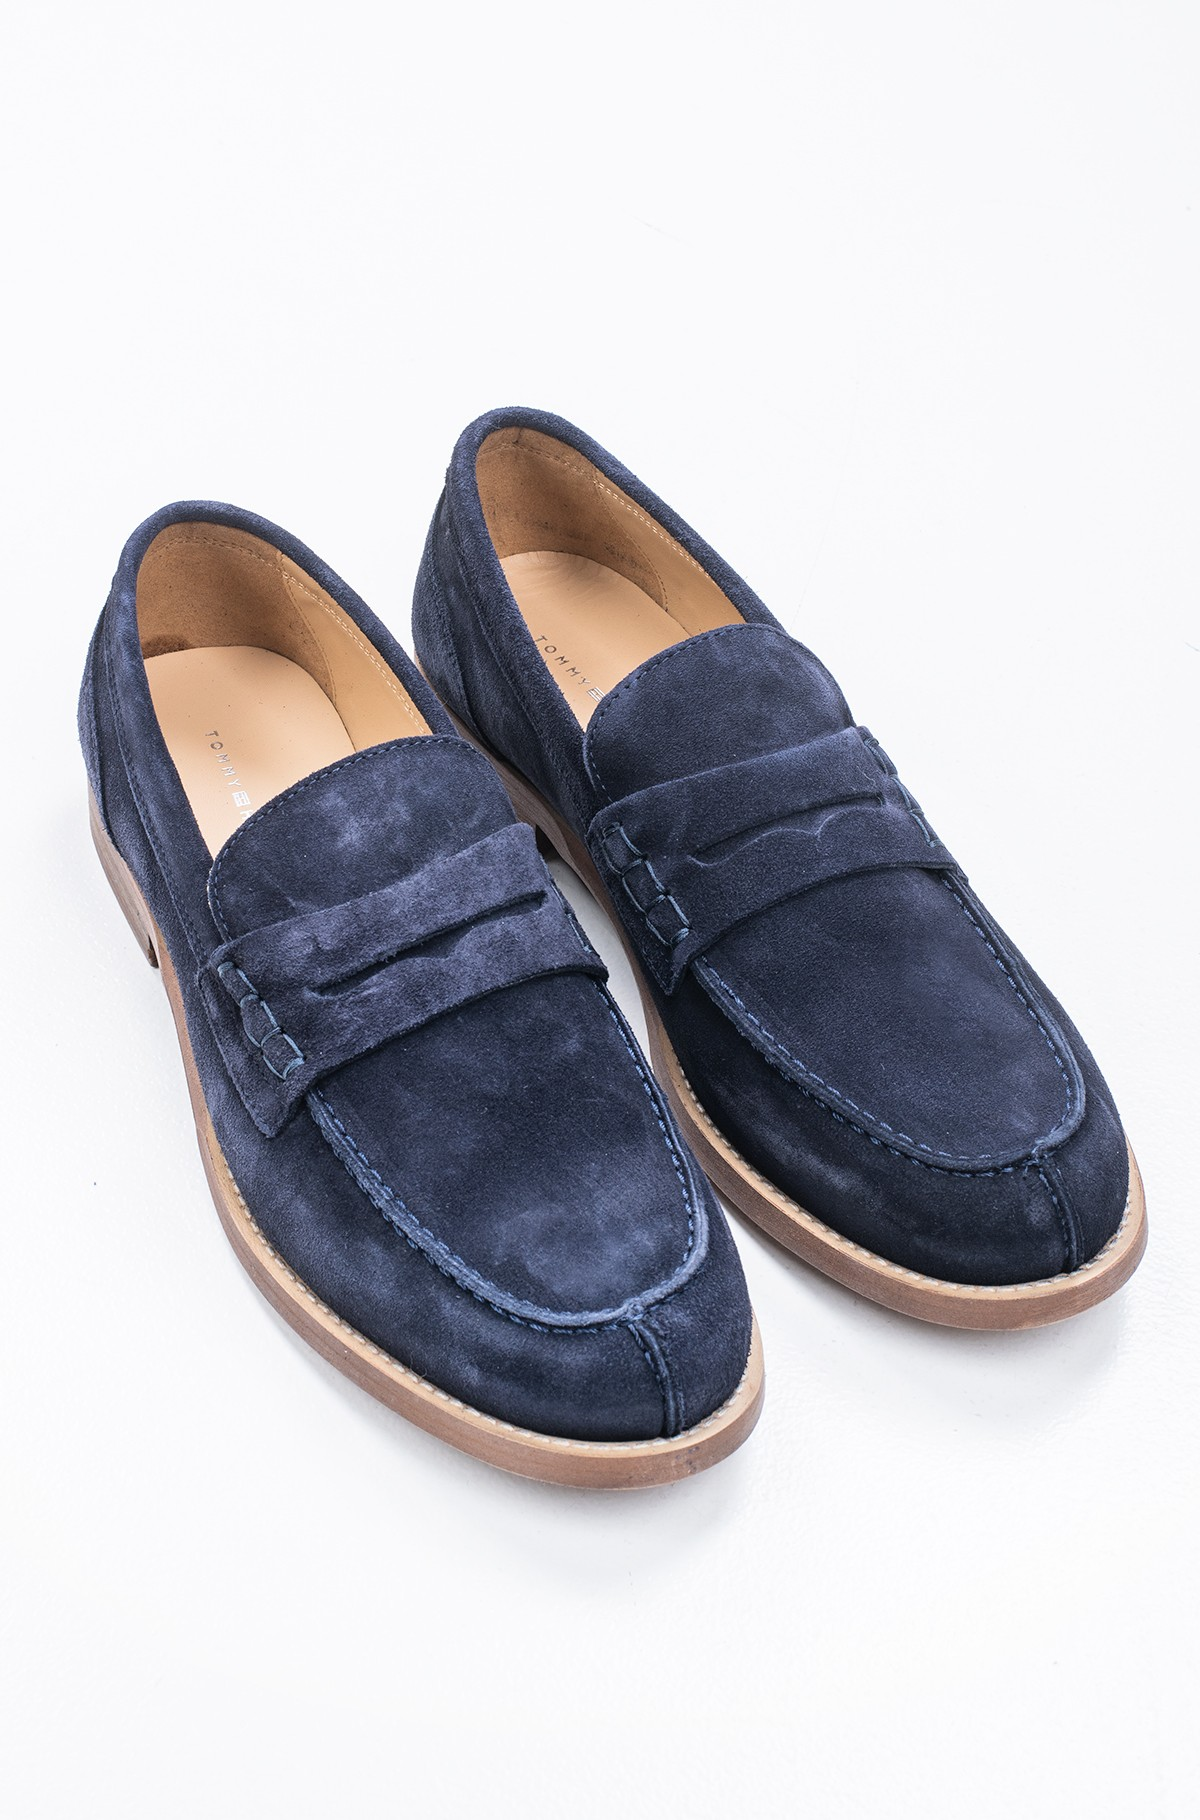 Kingad HILFIGER SUEDE LOAFER-full-1